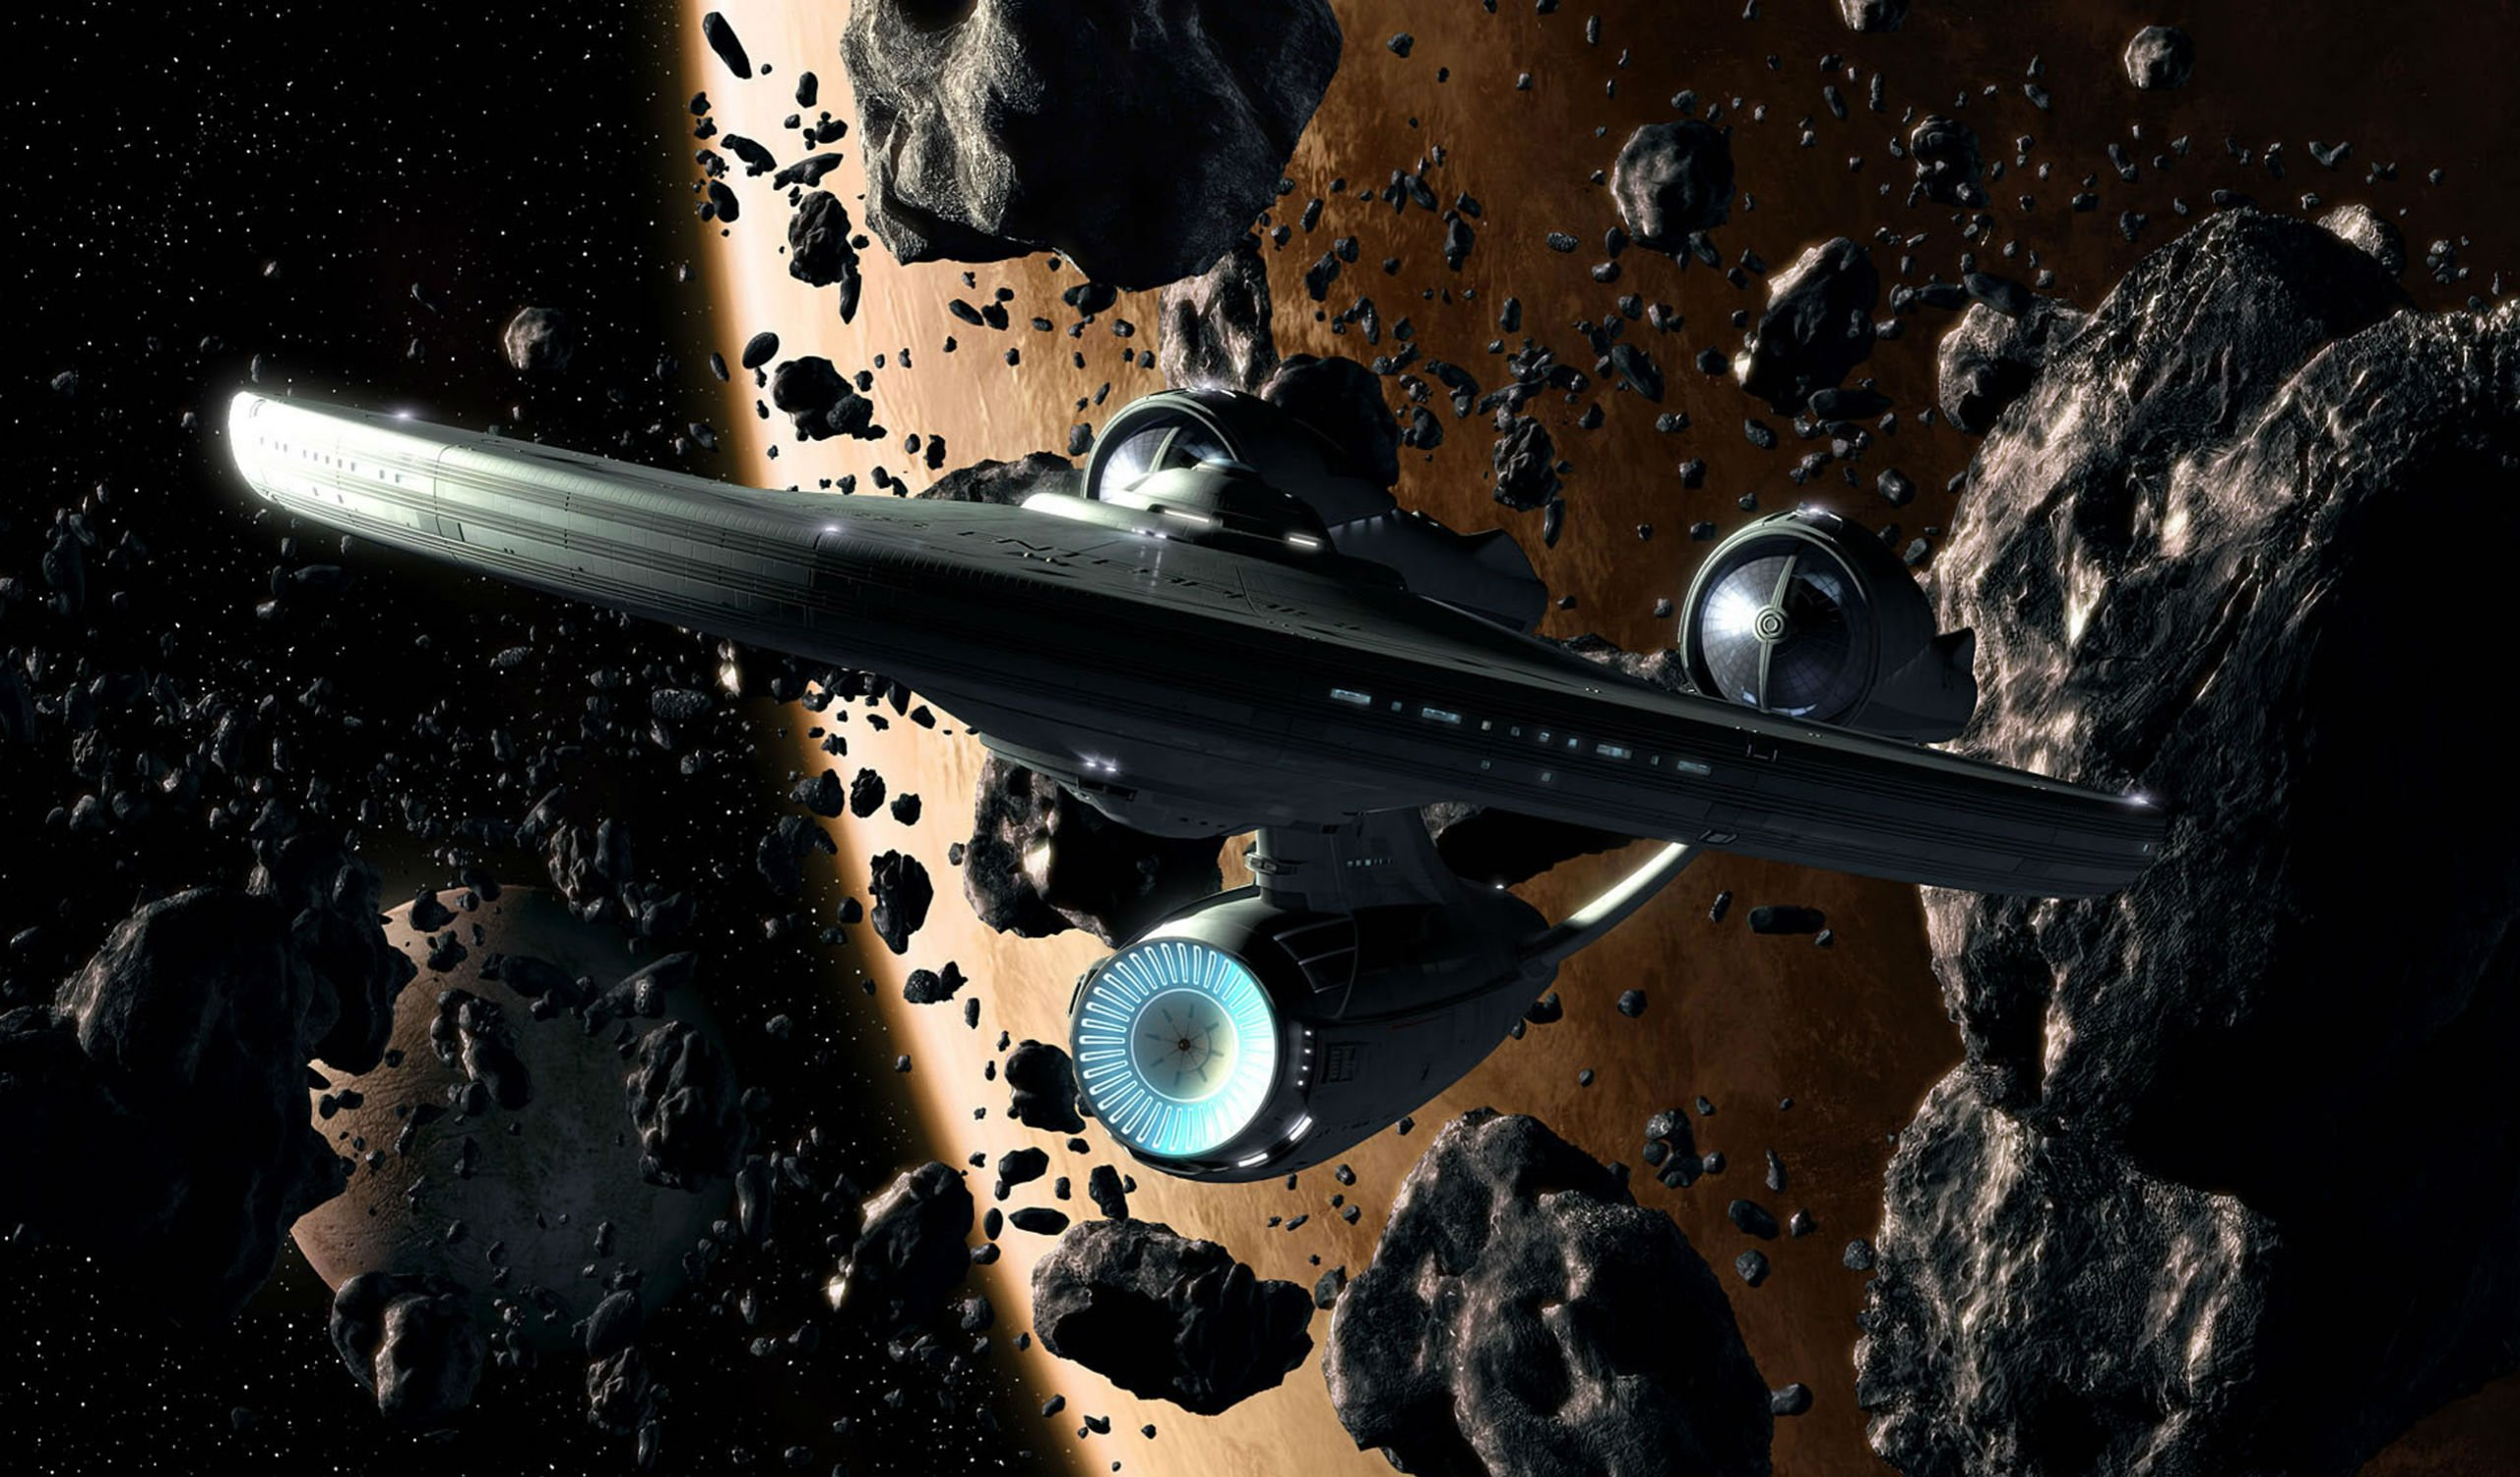 DEEP SPACE NINE Star Trek futuristic television sci fi spaceship 43 2560x1500